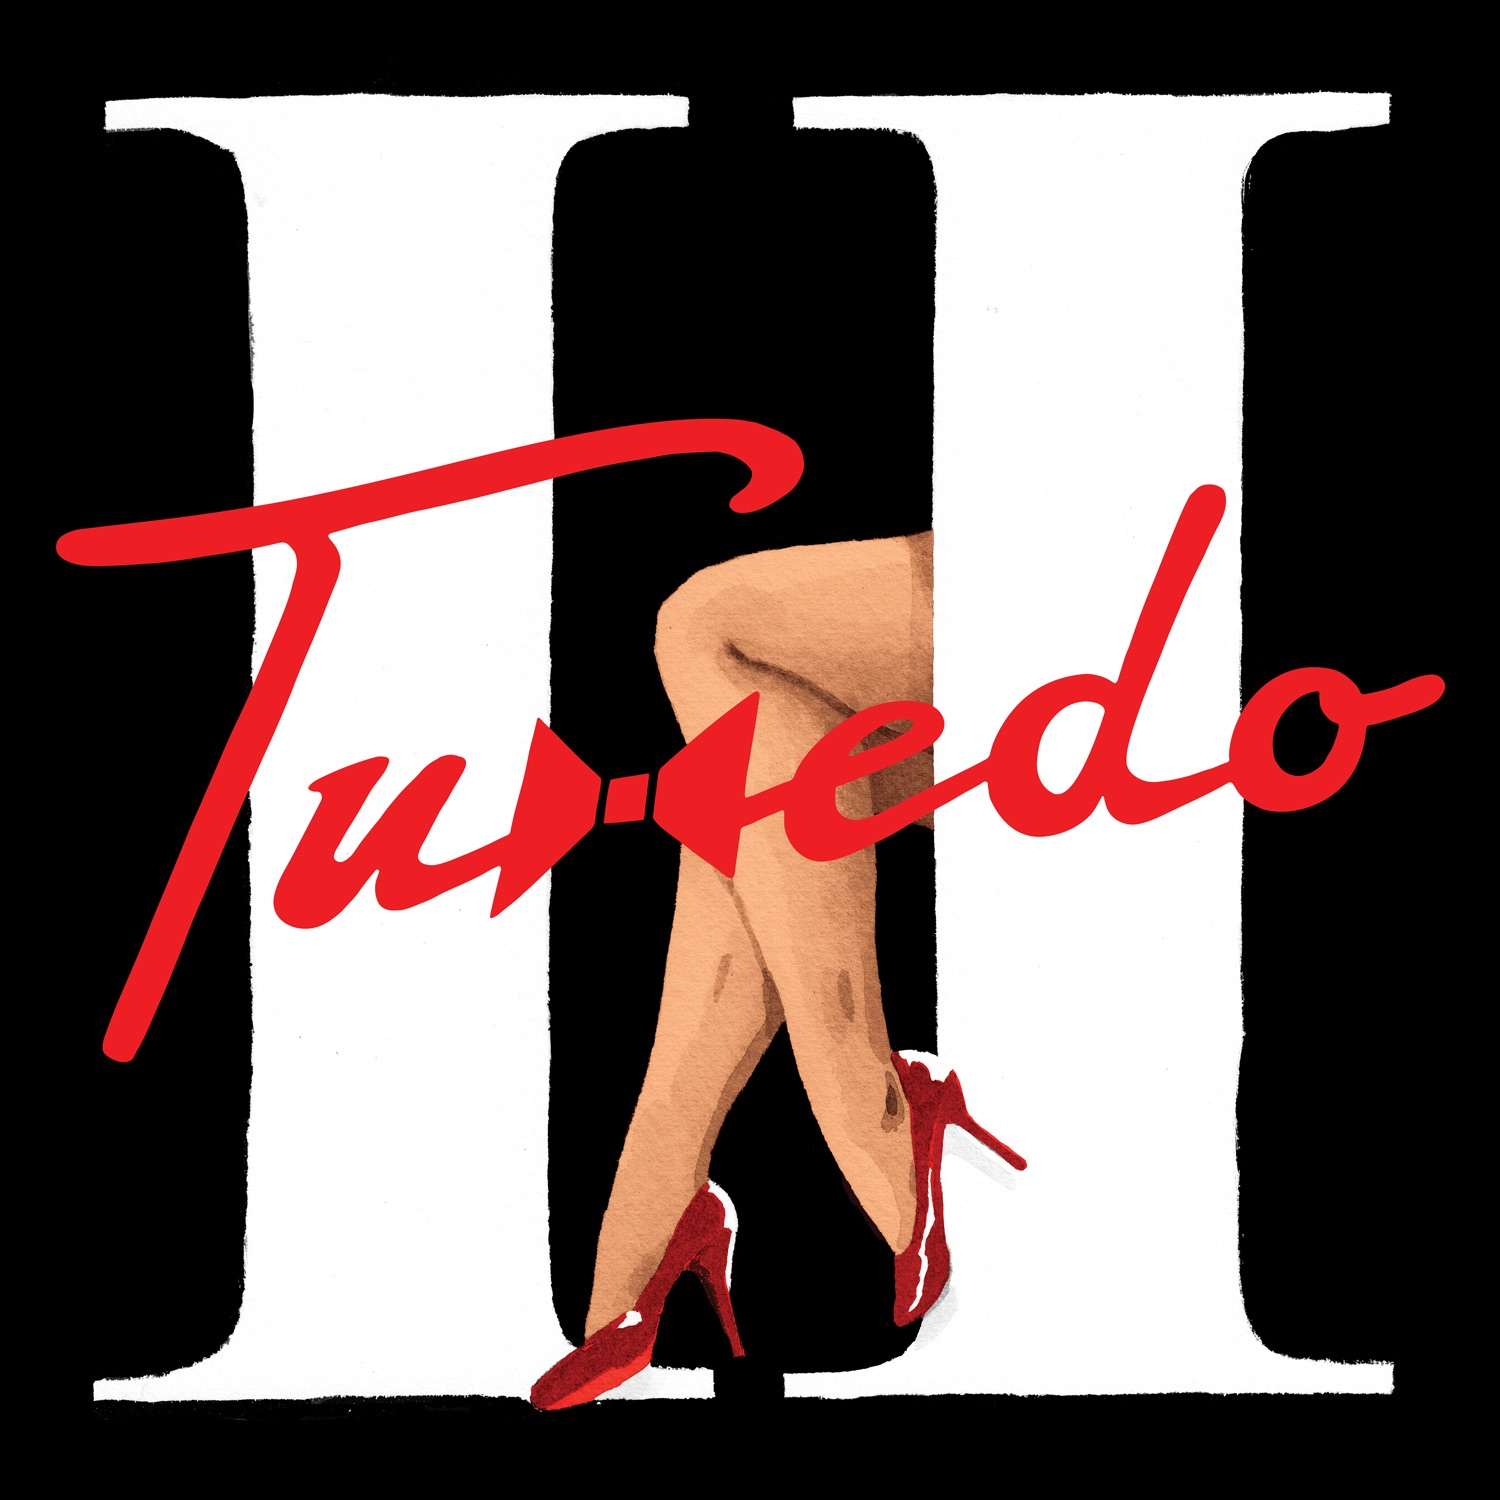 Tuxedo - 2nd Time Around